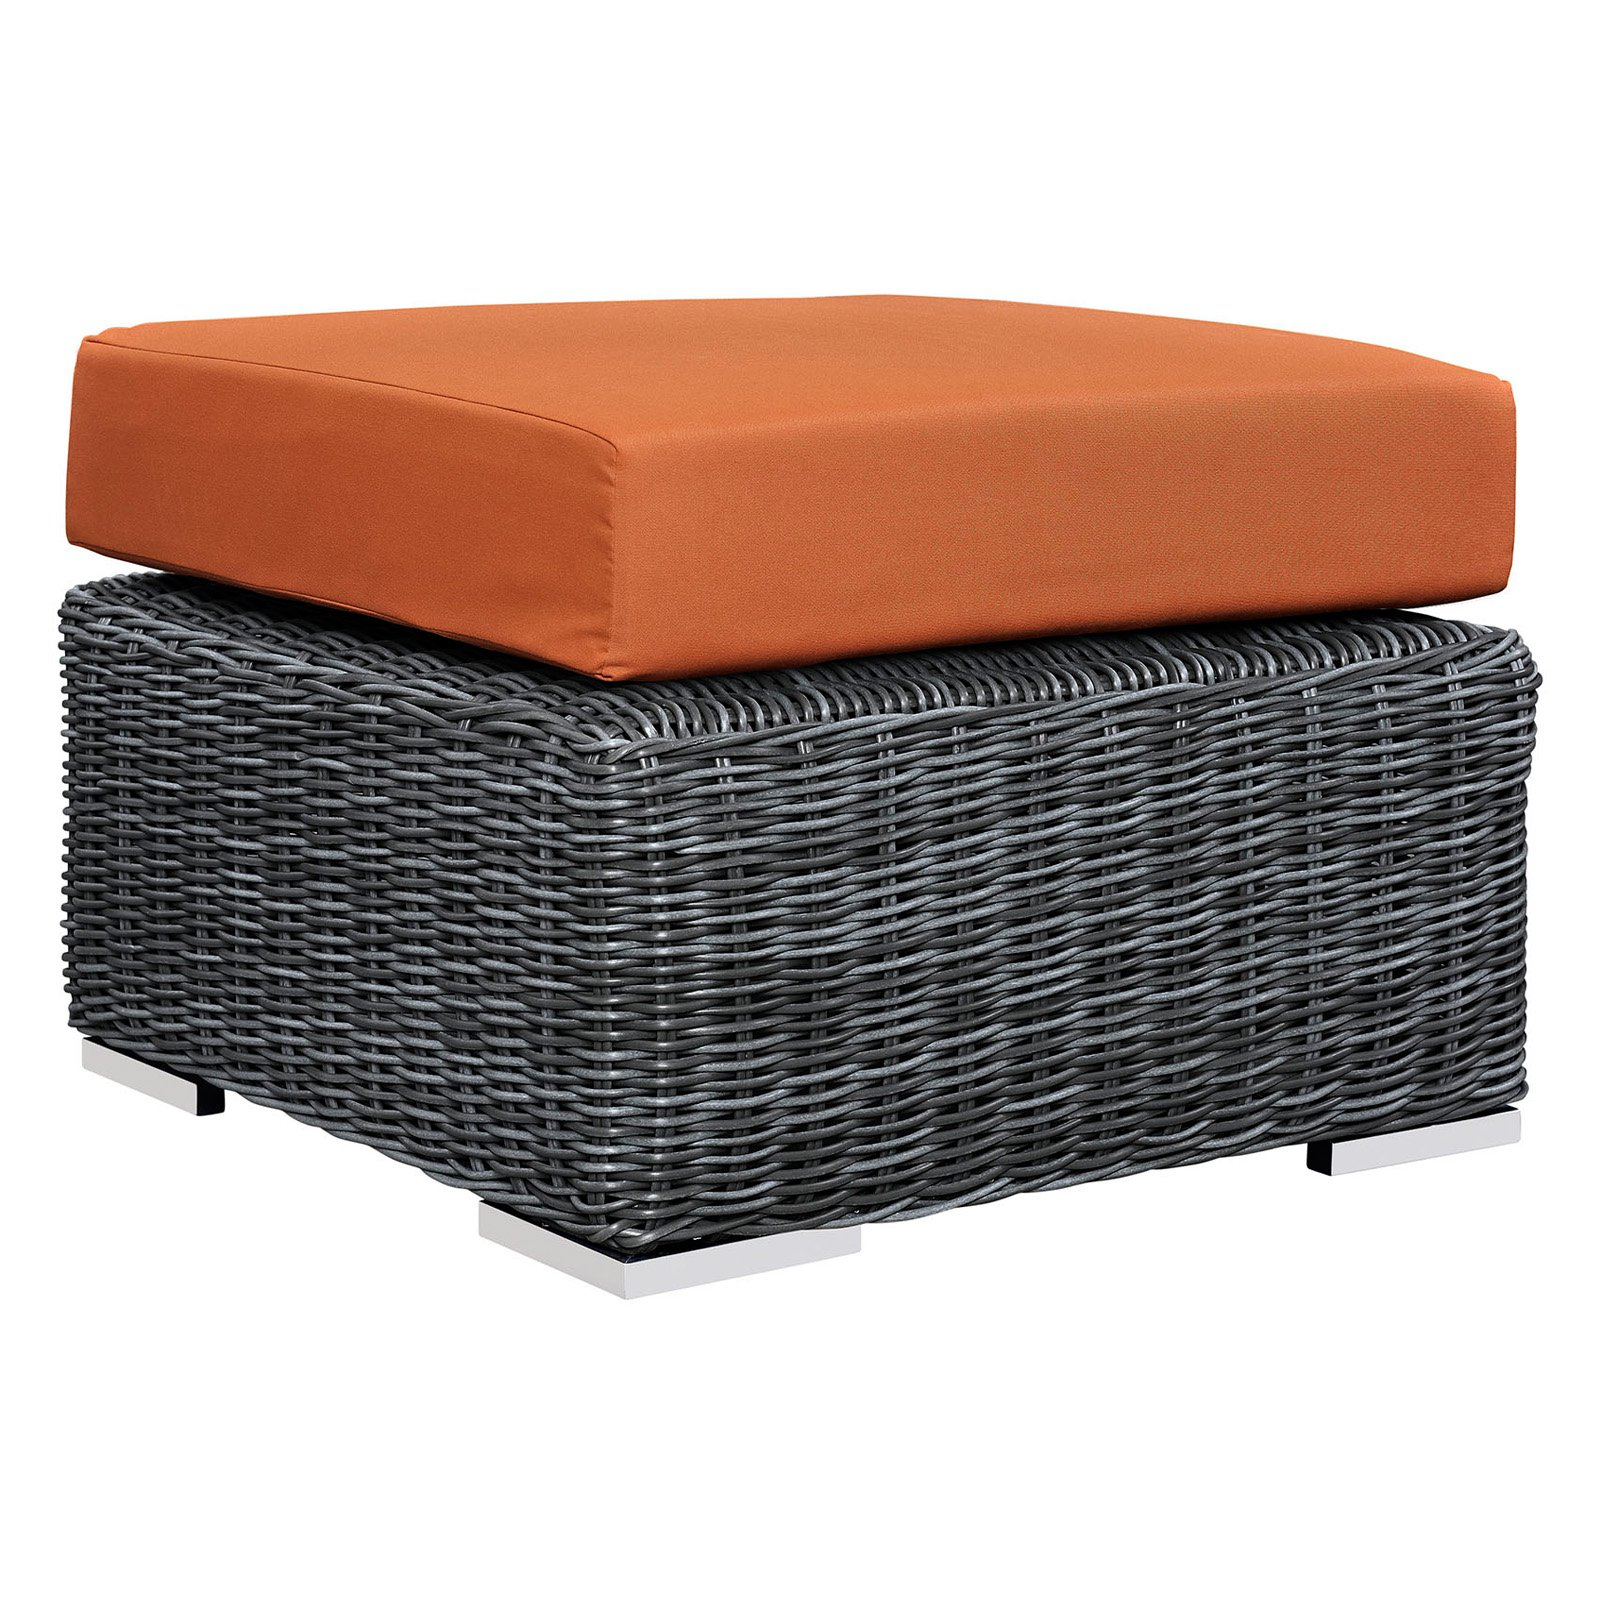 Modway Summon Outdoor Patio Sunbrella Ottoman, Multiple Colors